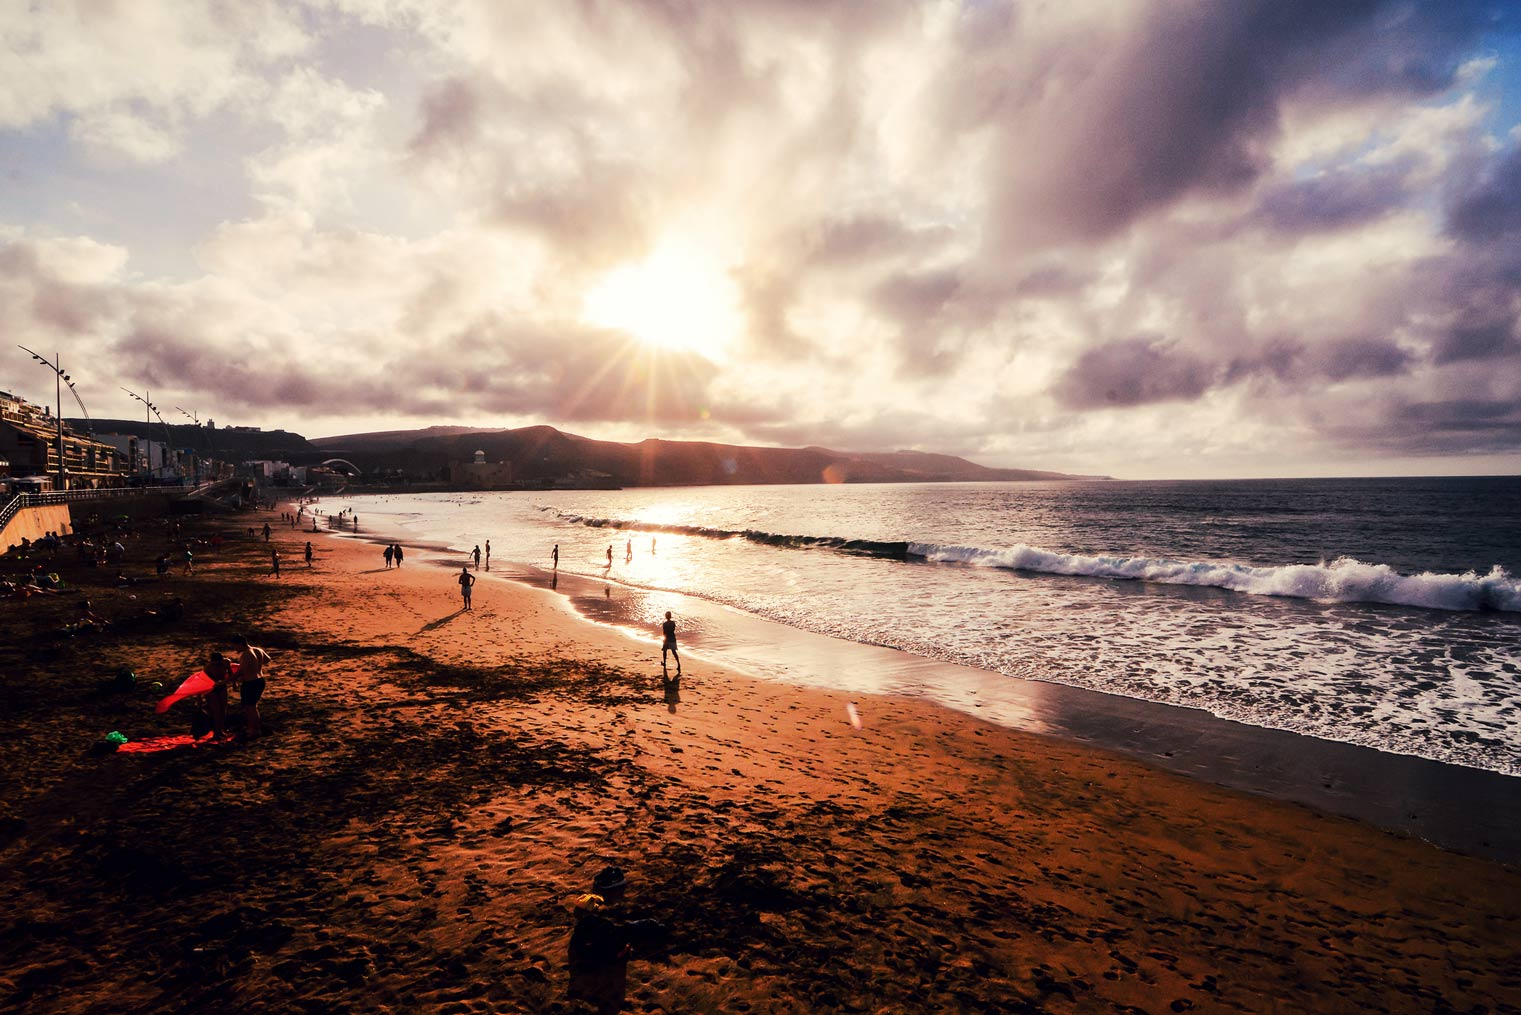 mejores playas espana las canteras - The best beaches in Spain to visit during the summer